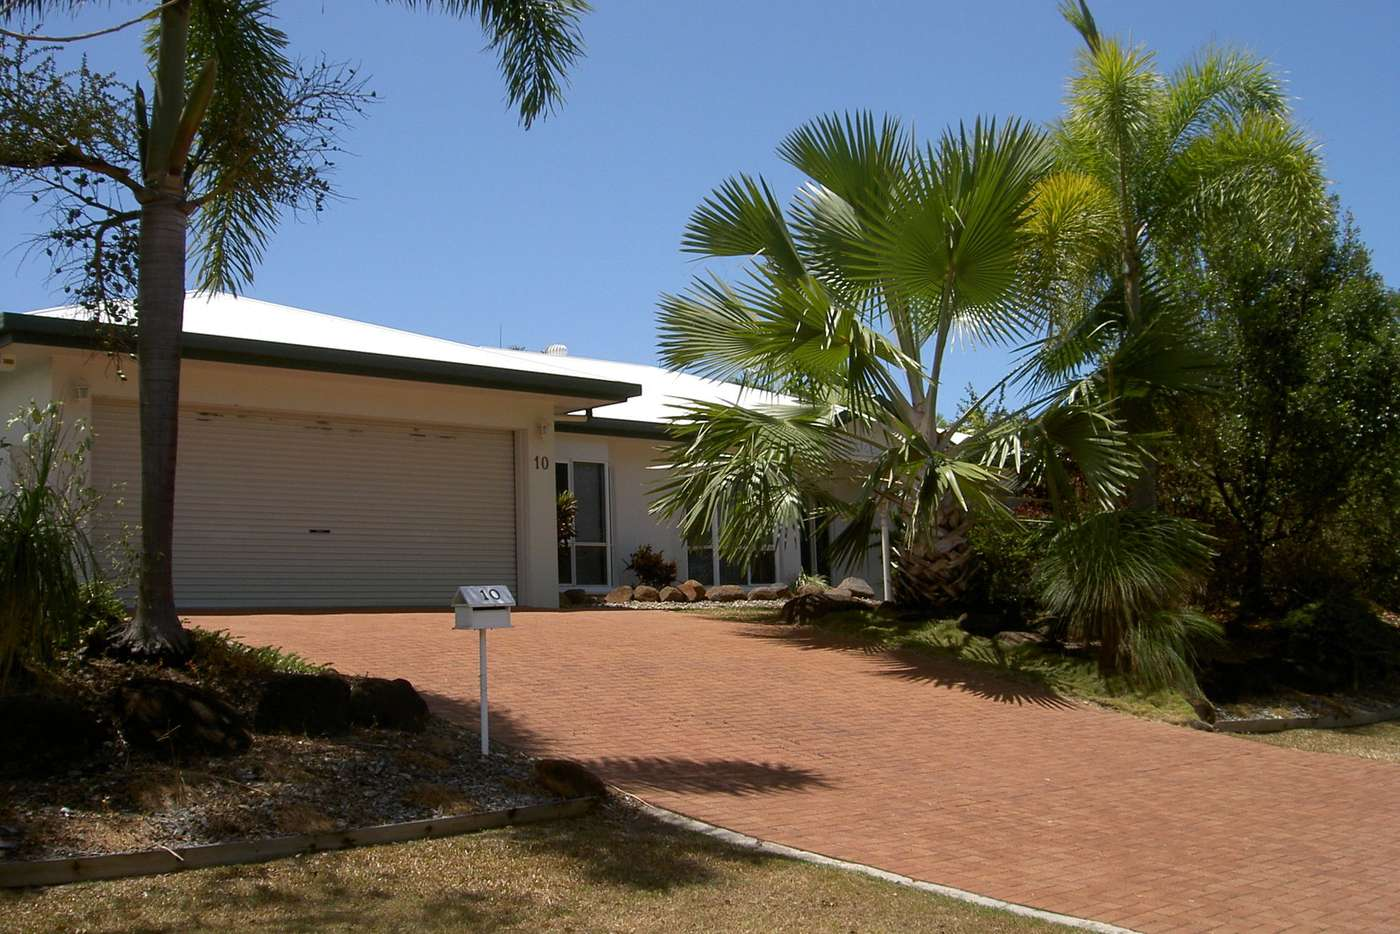 Main view of Homely house listing, 10 Bramble Street, Clifton Beach QLD 4879